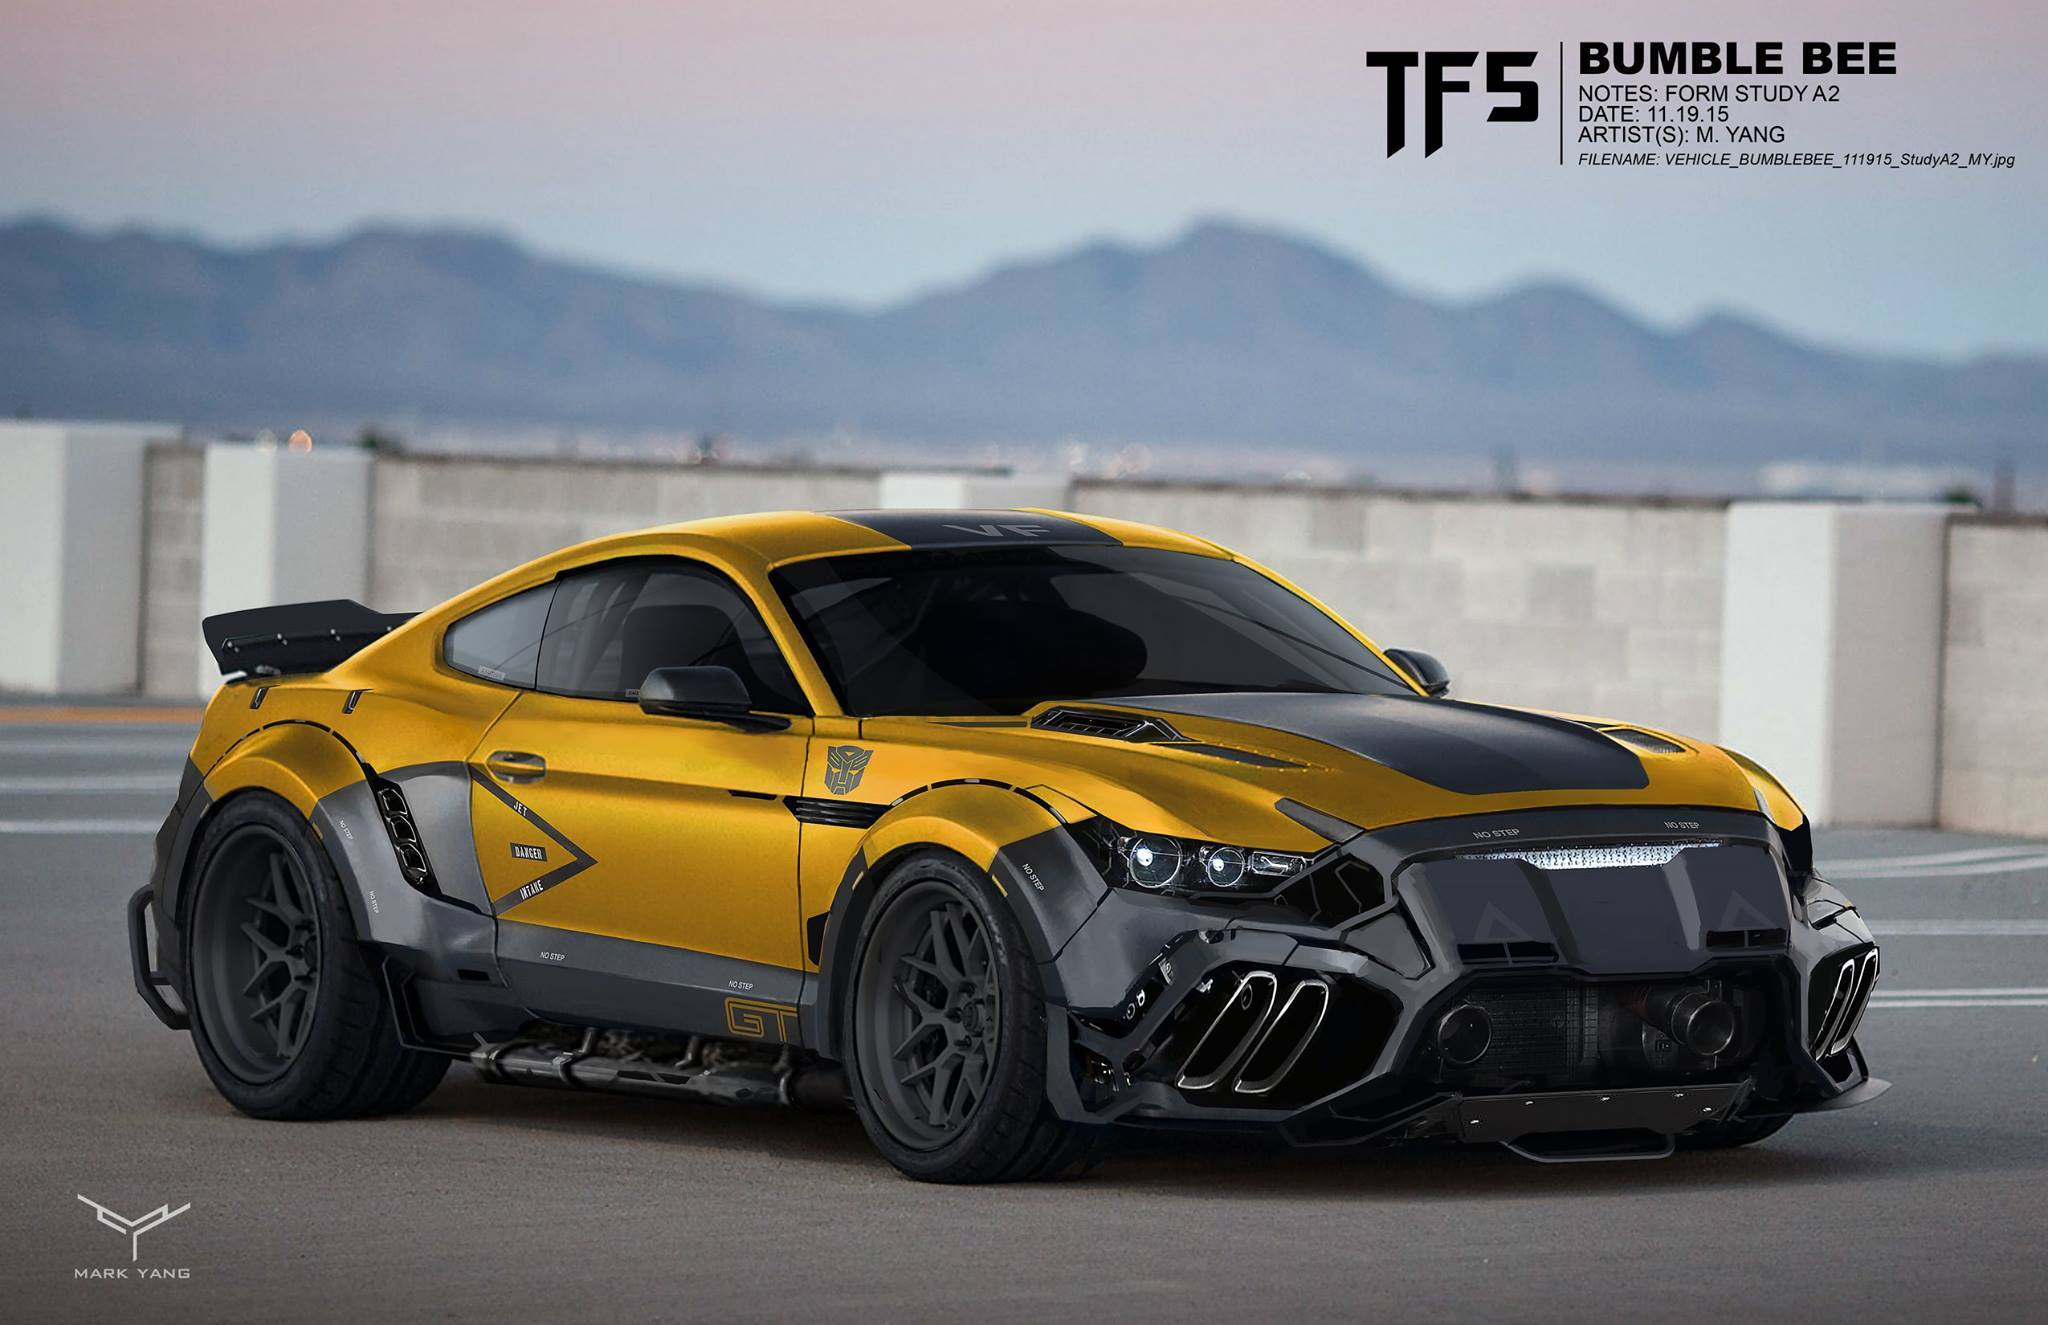 Cool Cars Drifting Wallpapers Hd Transformers The Last Knight Concept Art By Mark Yang